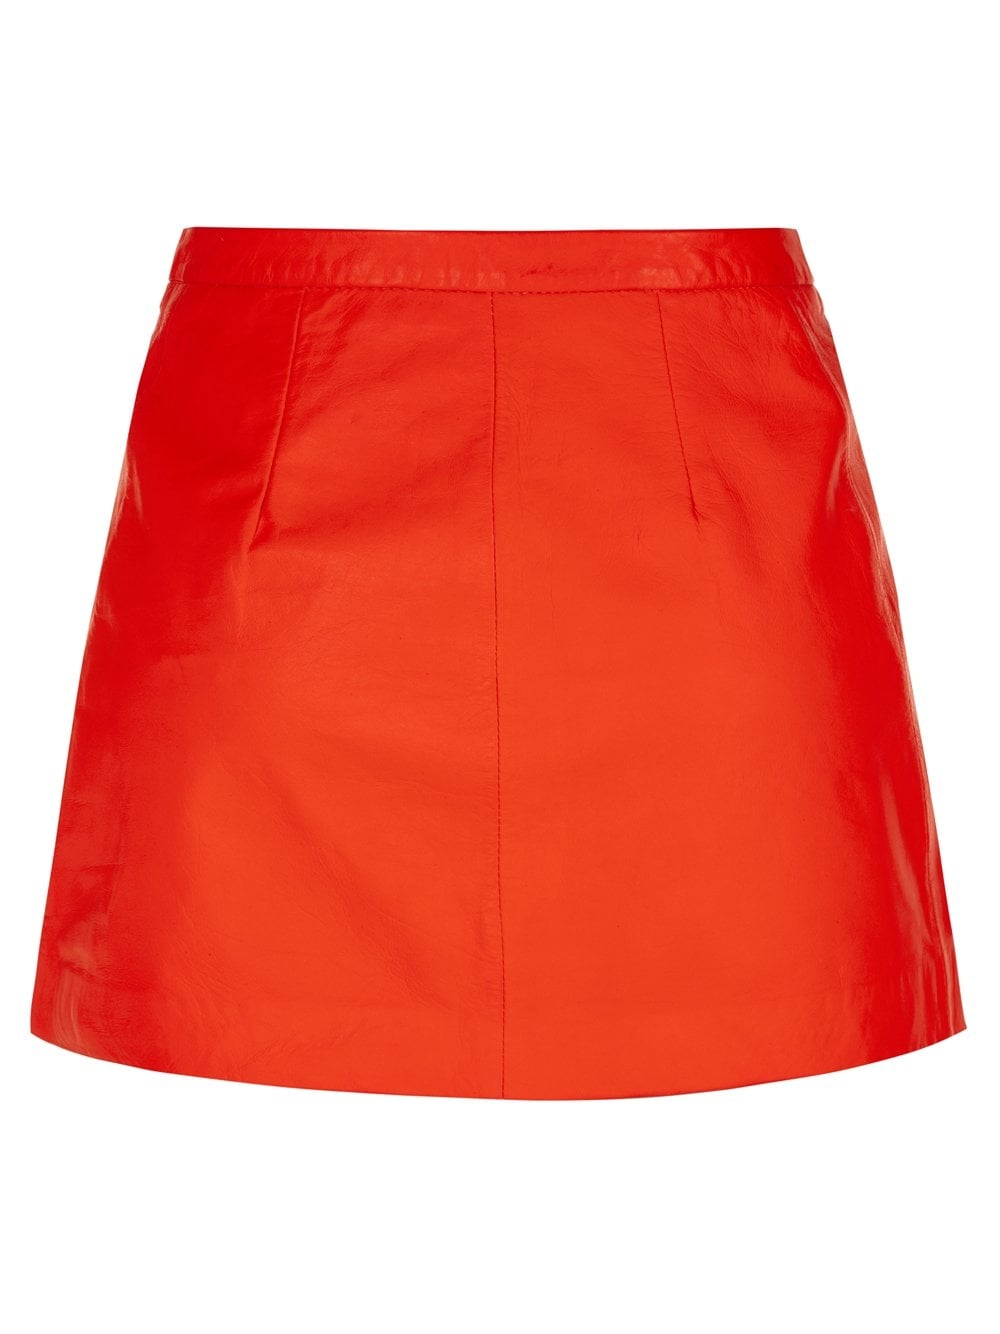 Muubaa Seema Orange Leather Skirt